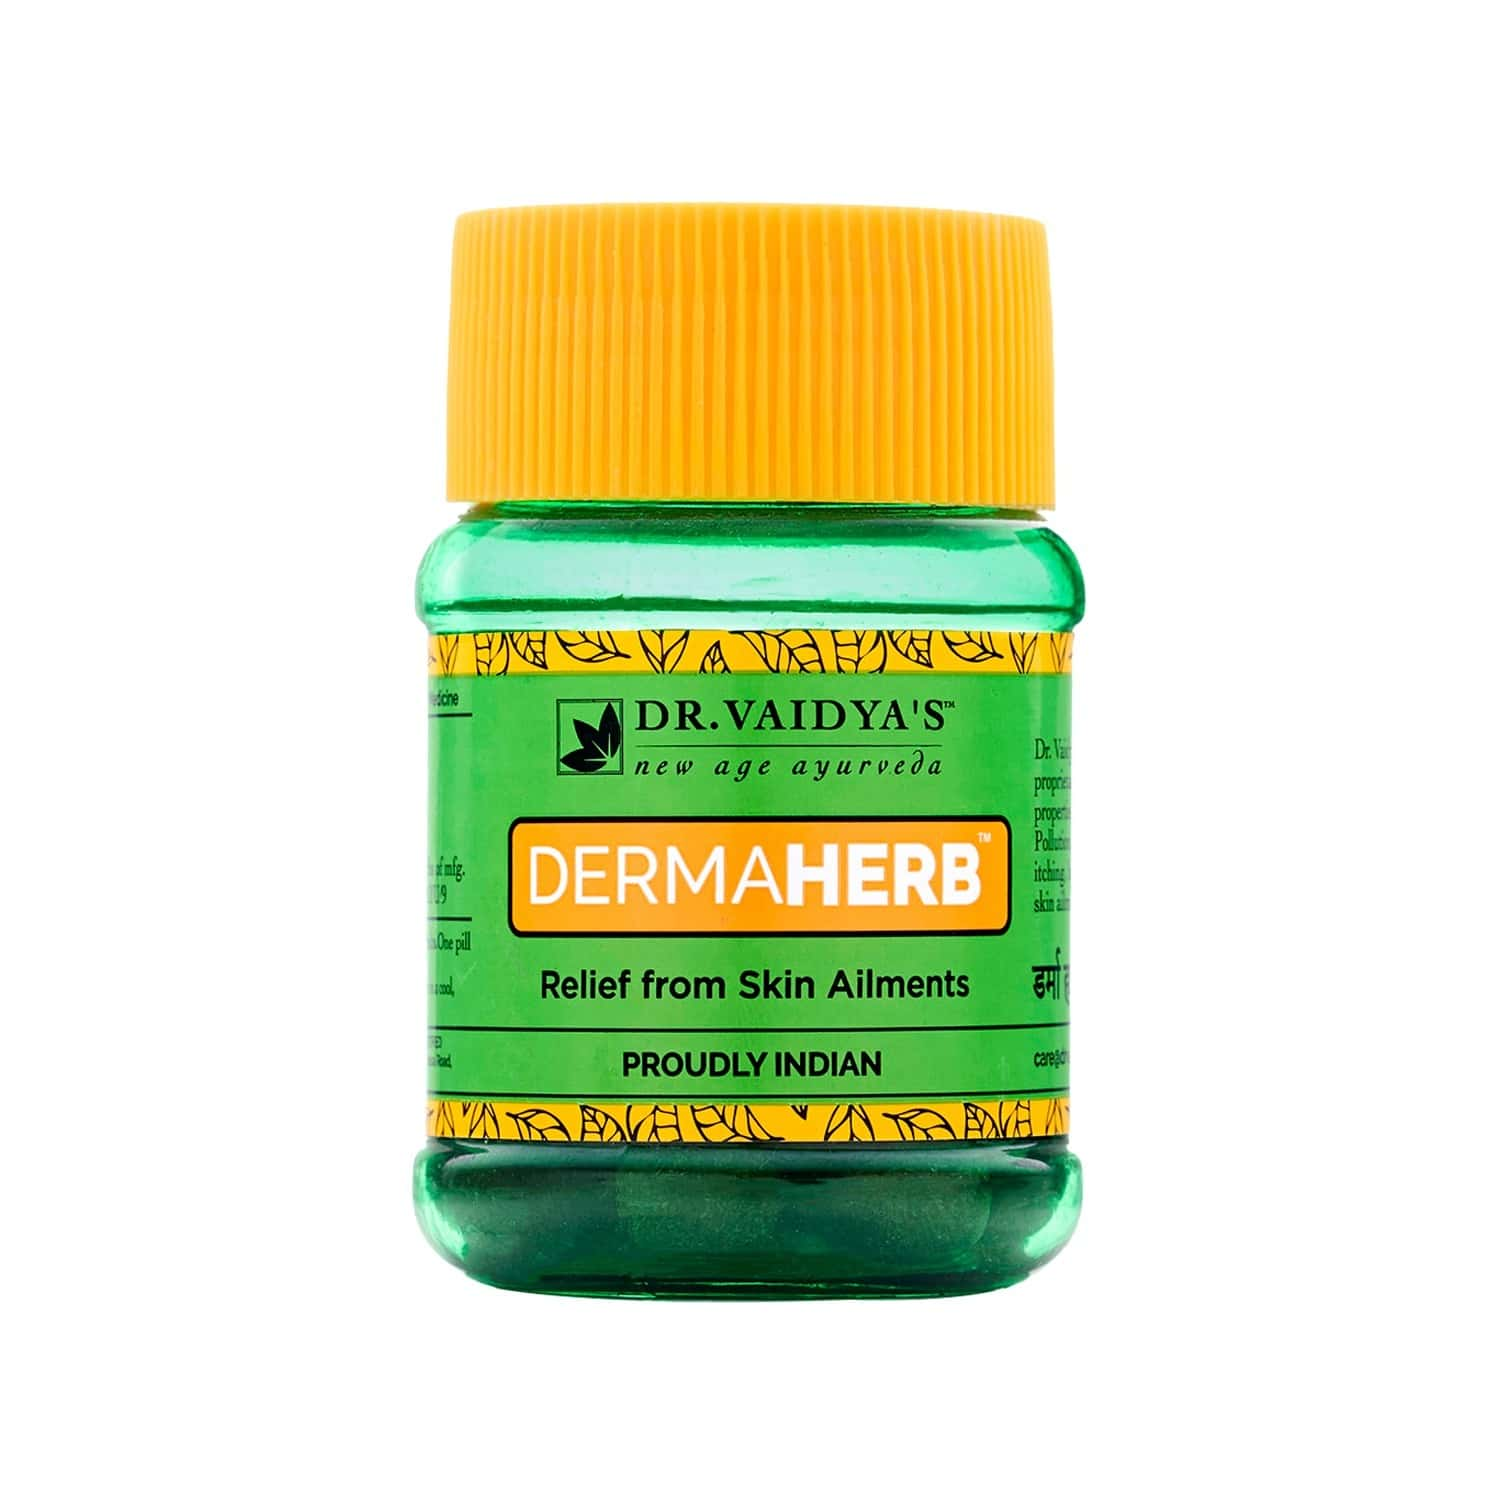 Dr. Vaidya's Dermaherb Pills Pack Of 2 (60 Pills) (skin Care Product)